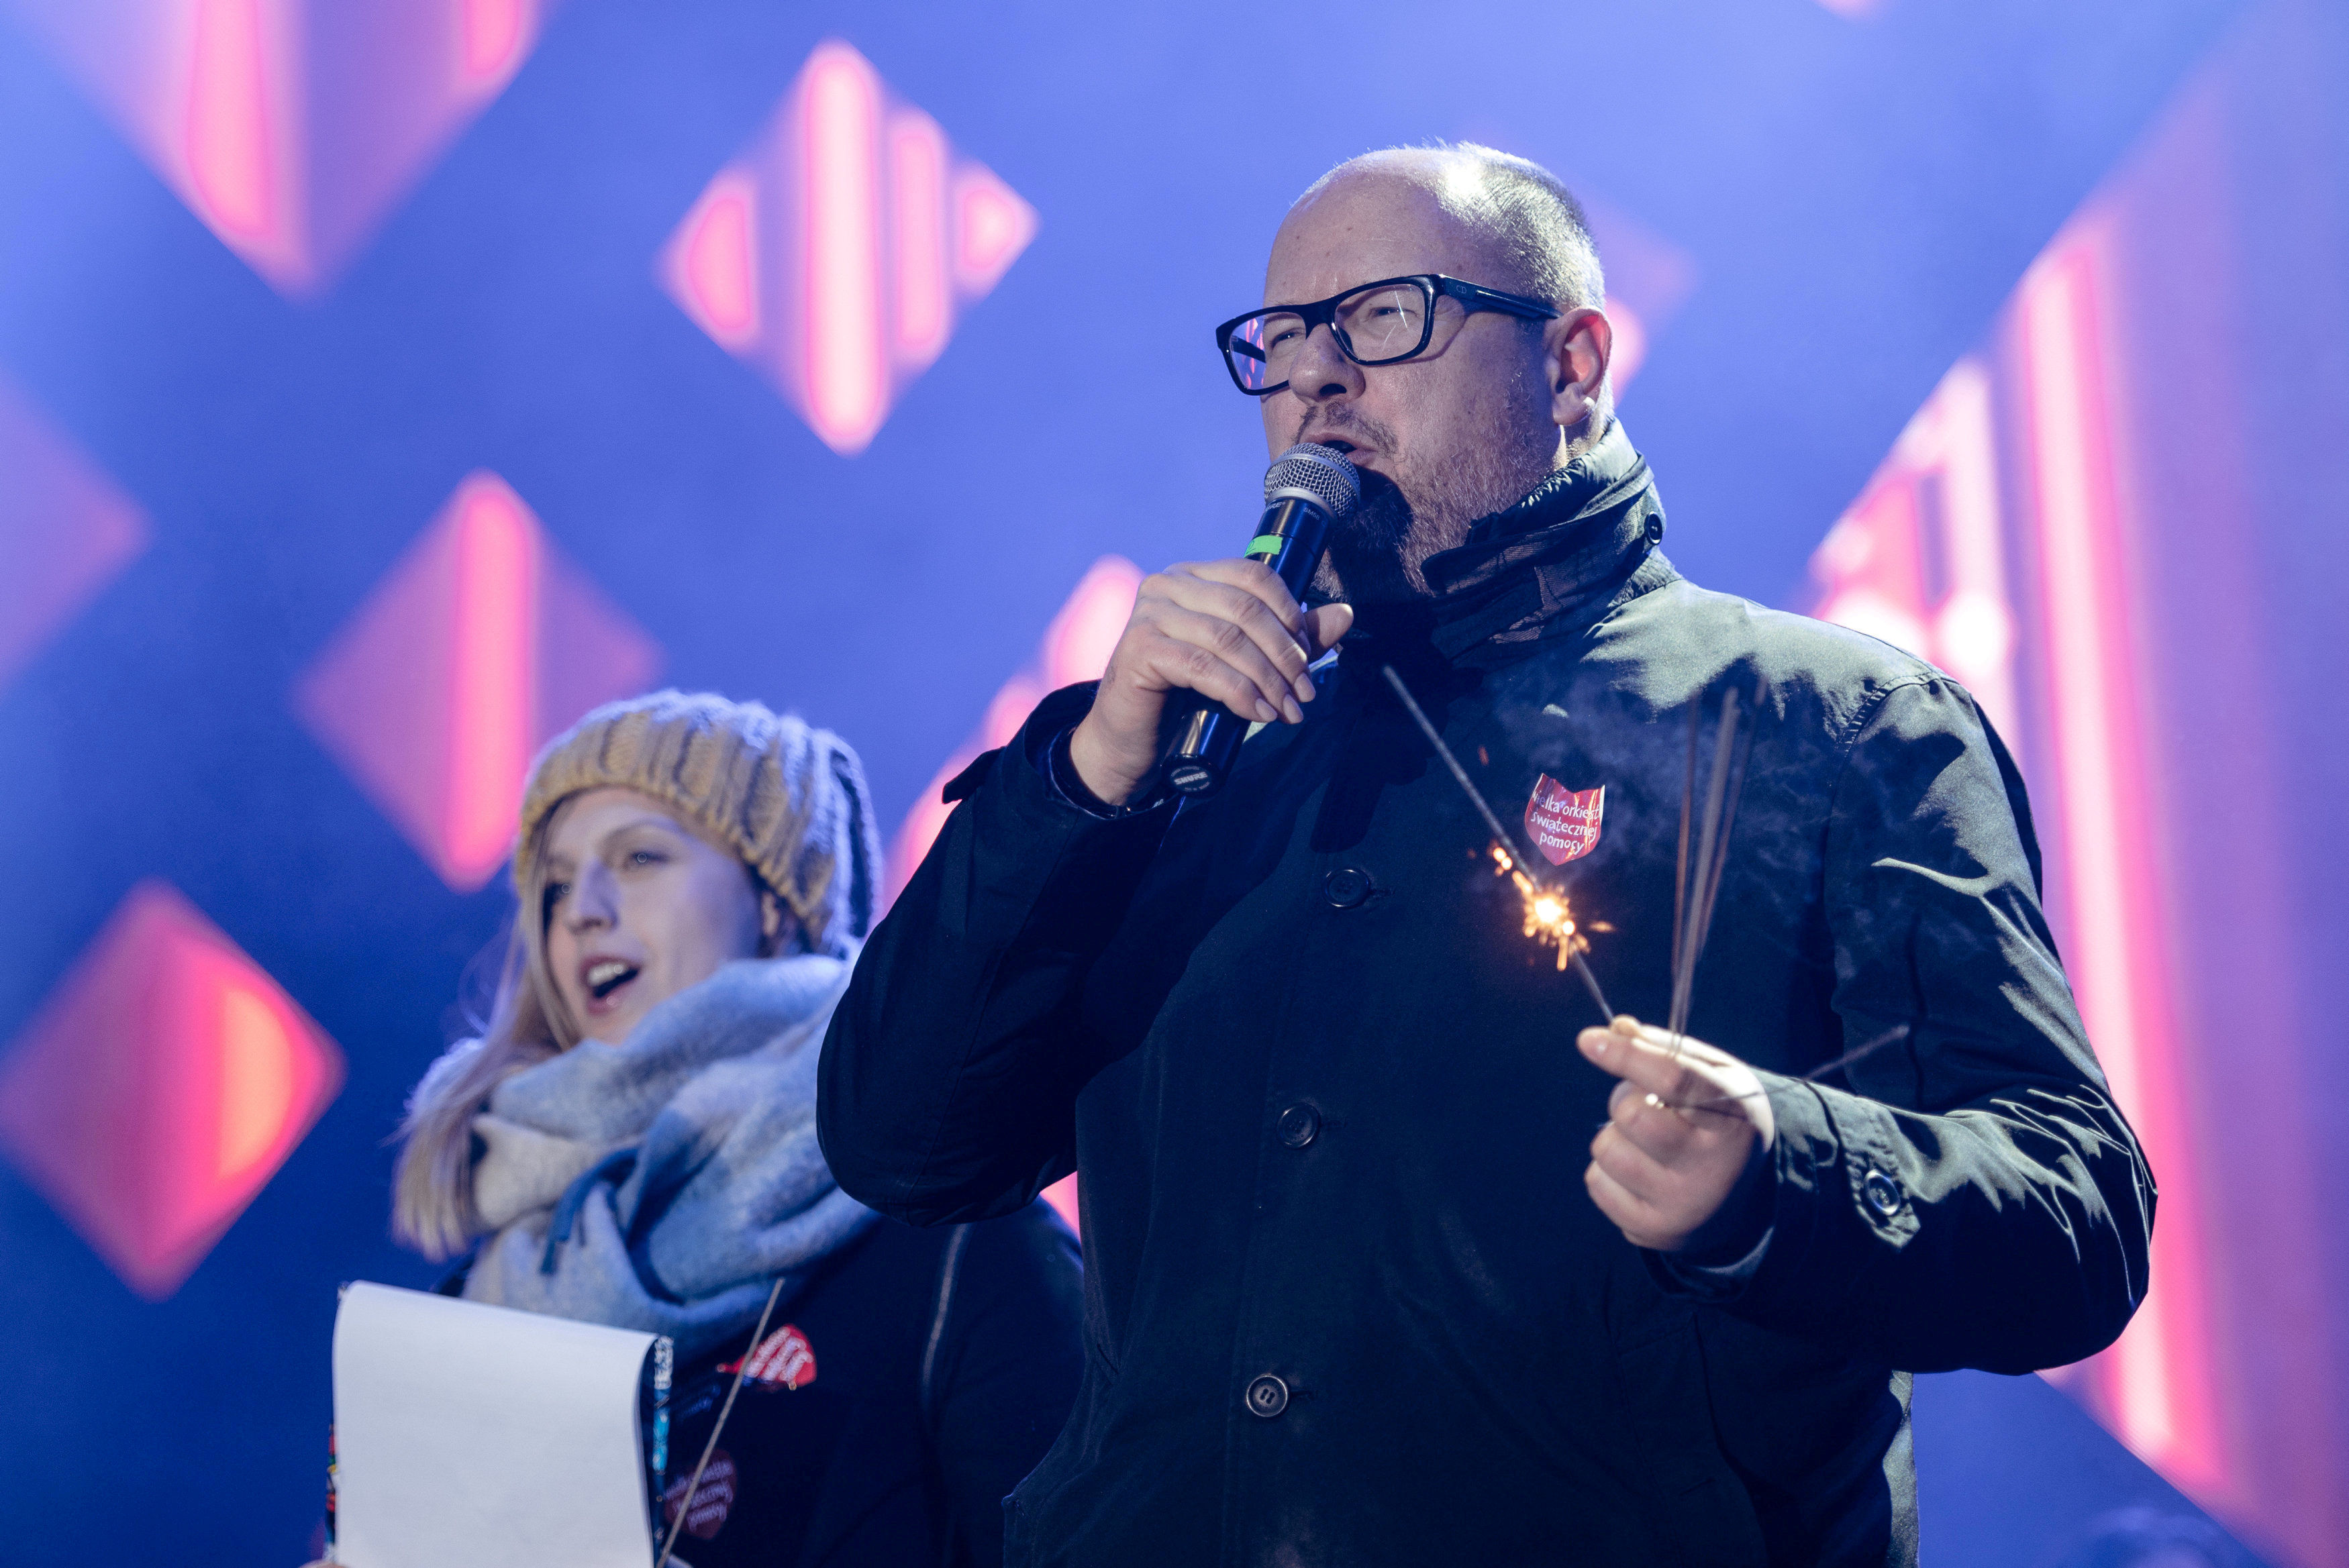 FILE PHOTO: Gdansk's Mayor Pawel Adamowicz speaks during the 27th Grand Finale of the Great Orchestra of Christmas Charity in Gdansk, Poland January 13, 2019. Agencja Gazeta/Bartosz Banka/File Photo via REUTERS